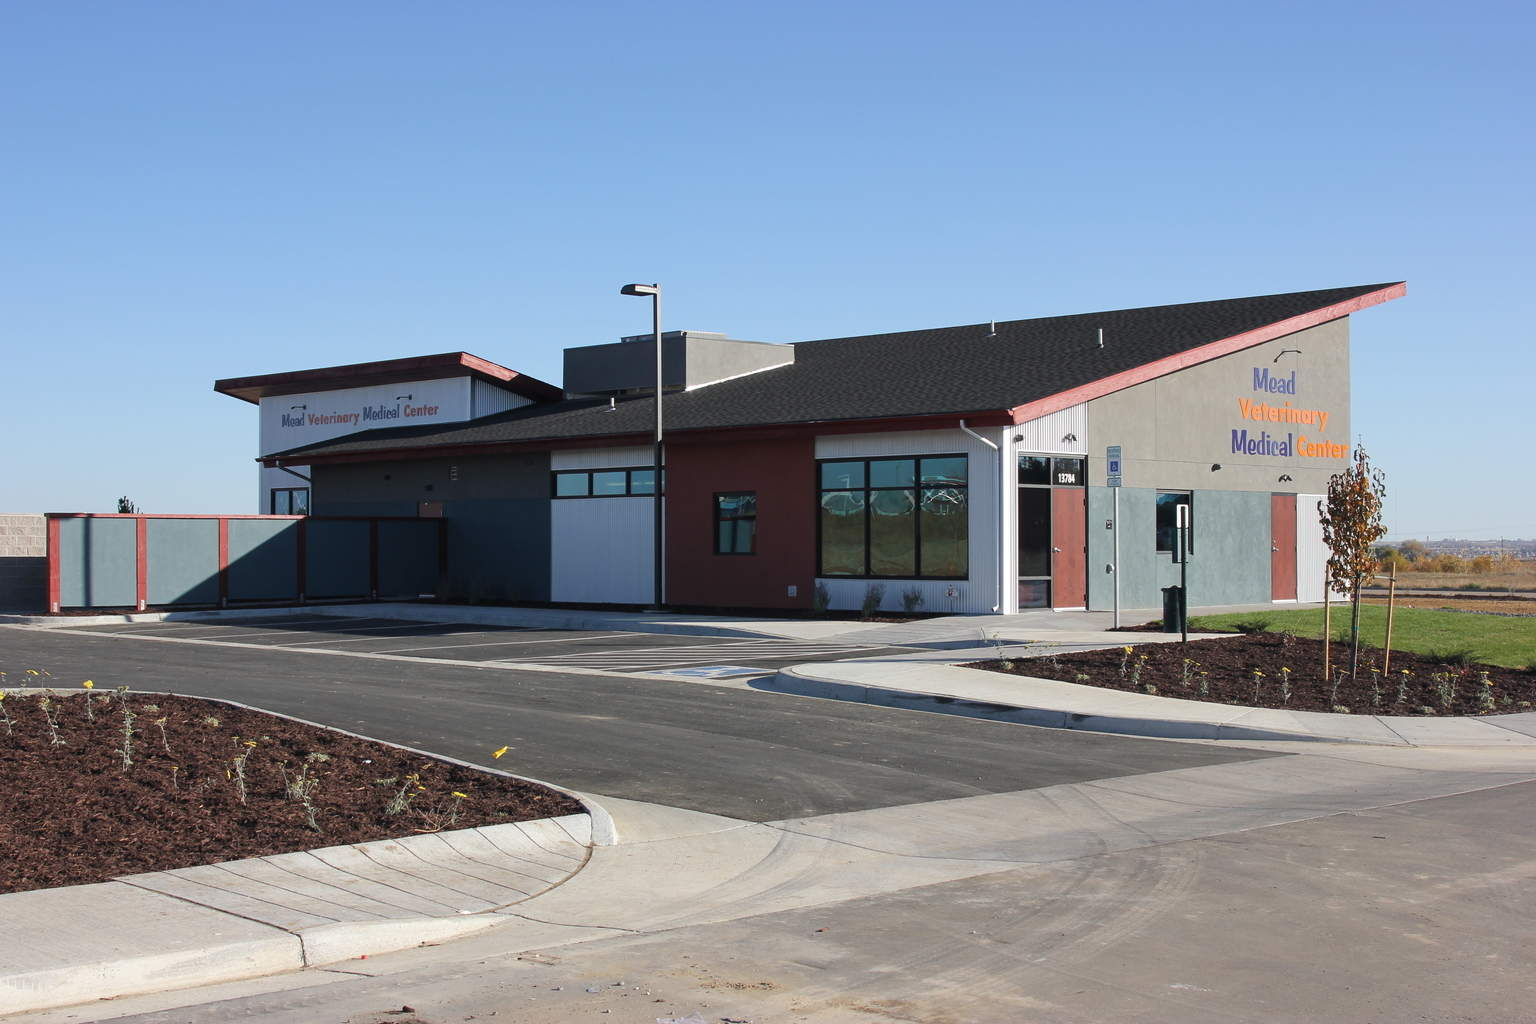 animal clinic in Mead, CO